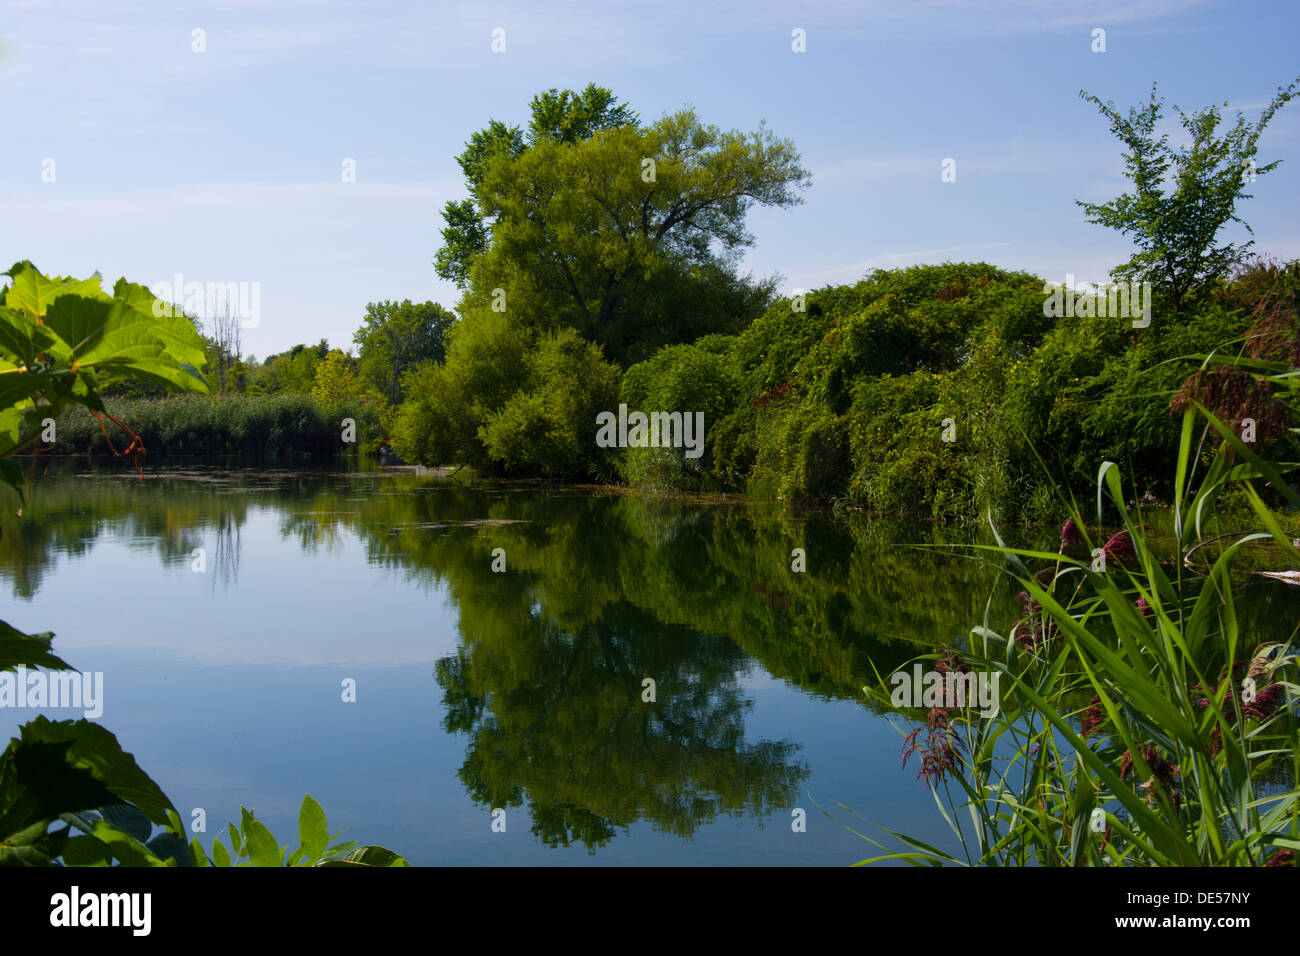 Pond beside the Soulange Canal. - Stock Image